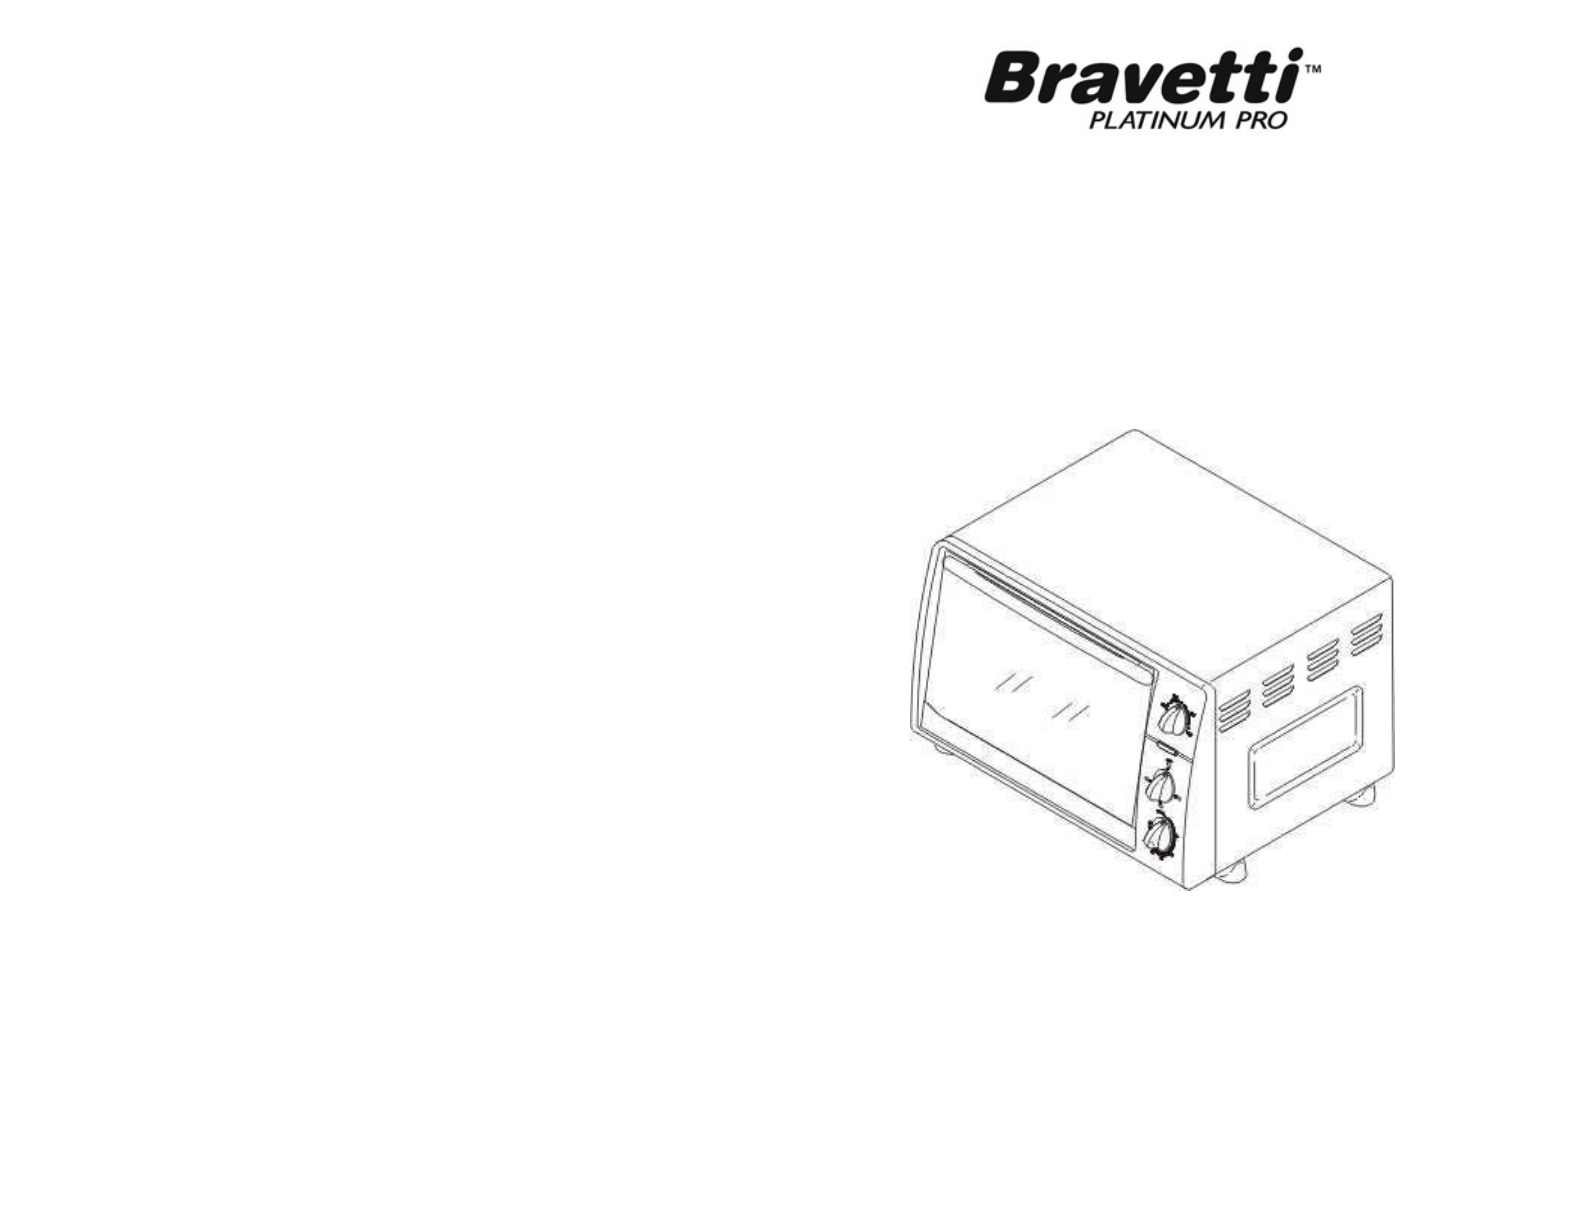 Bravetti Convection Oven To23h User Guide Manualsonline Com